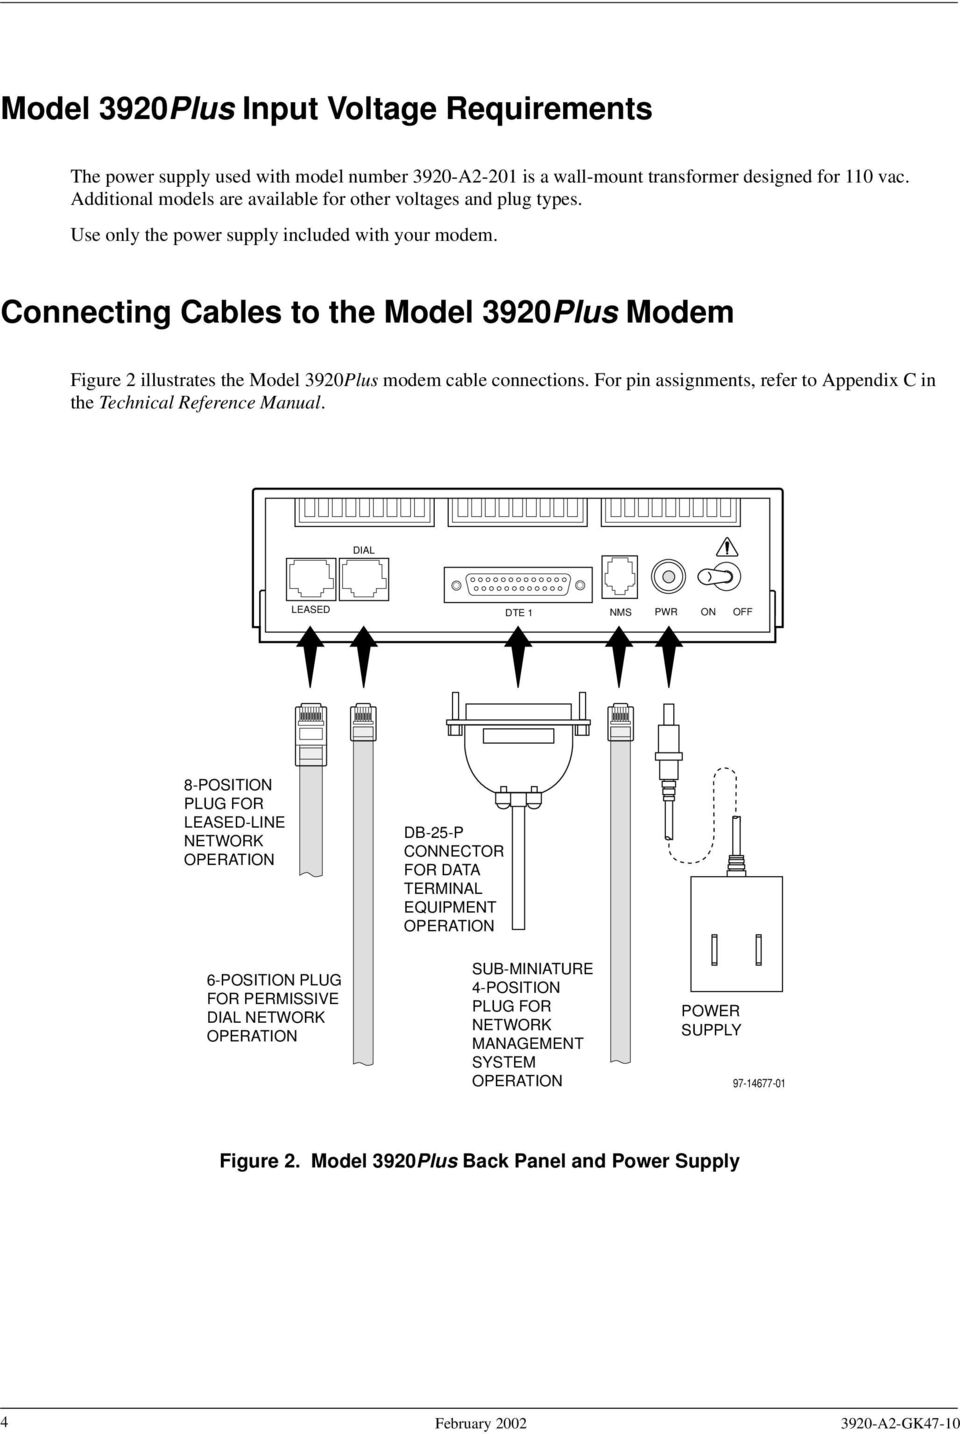 Connecting Cables to the Model 3920Plus Modem Figure 2 illustrates the Model 3920Plus modem cable connections. For pin assignments, refer to Appendix C in the Technical Reference Manual.